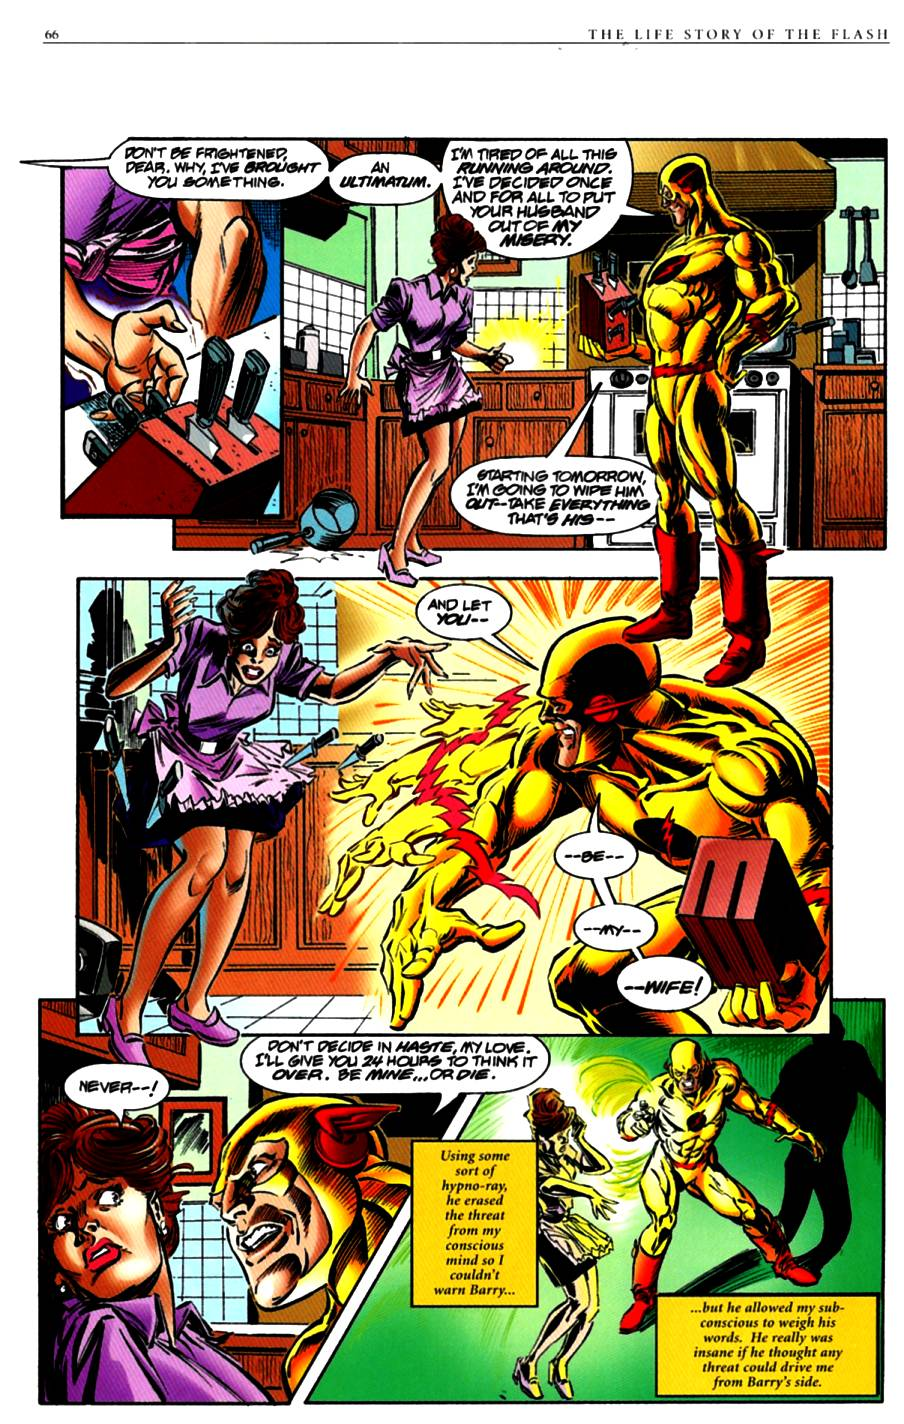 Read online The Life Story of the Flash comic -  Issue # Full - 68